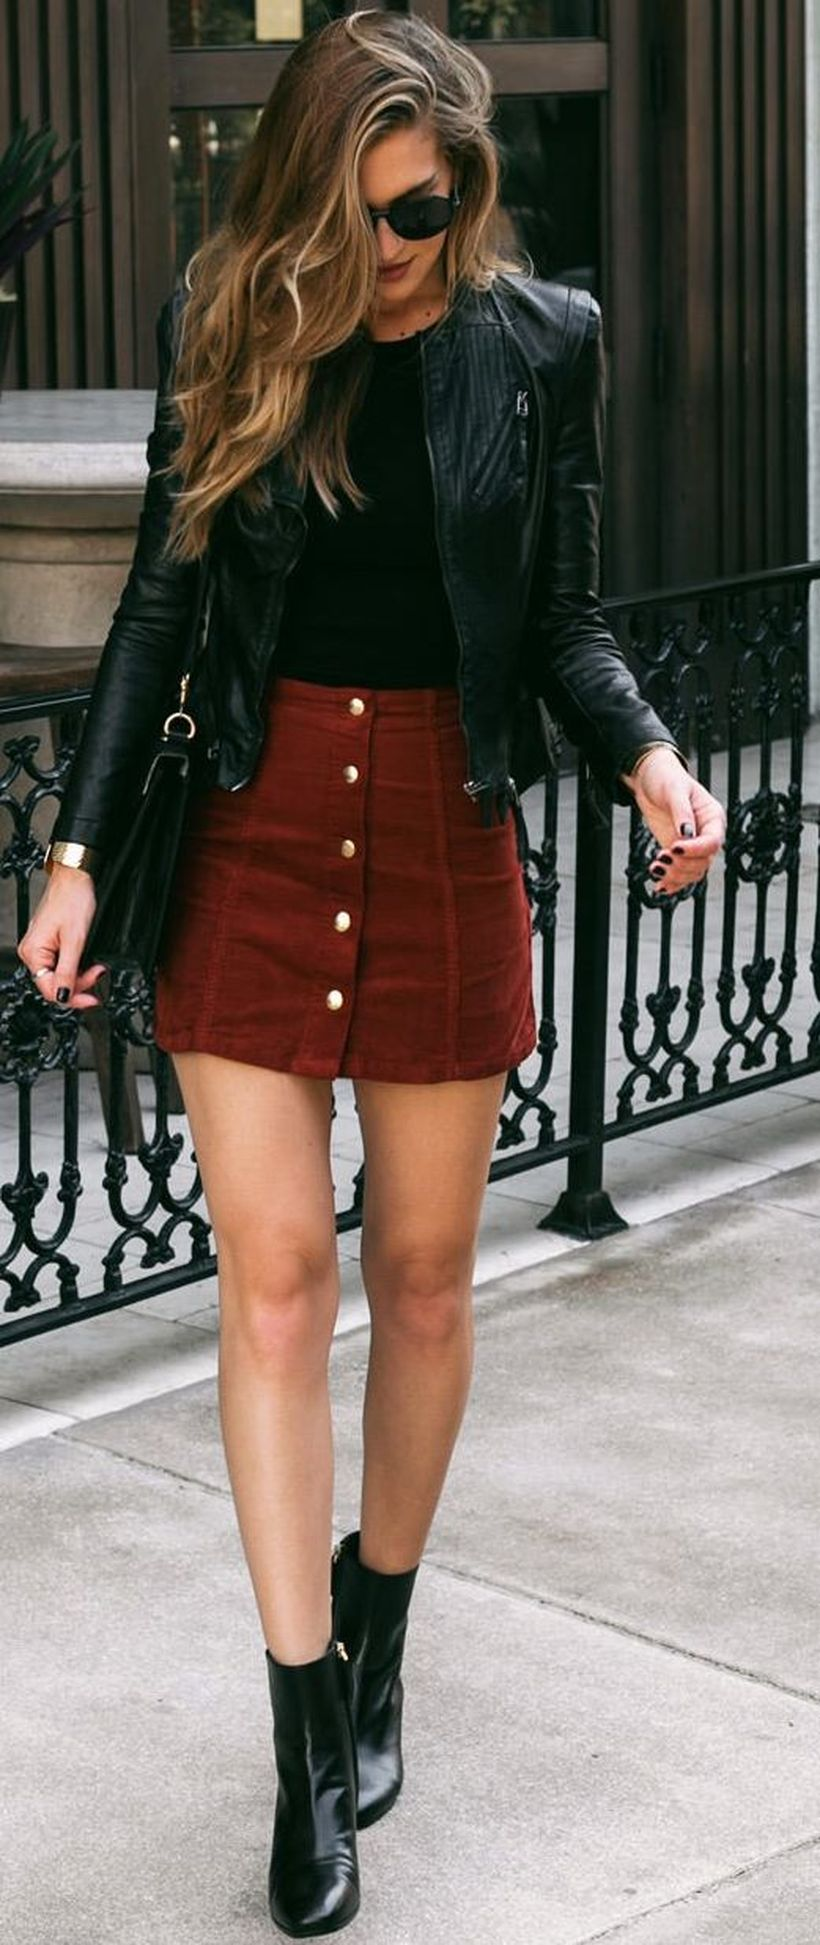 Fashionable skirt outfits ideas that you must try 30